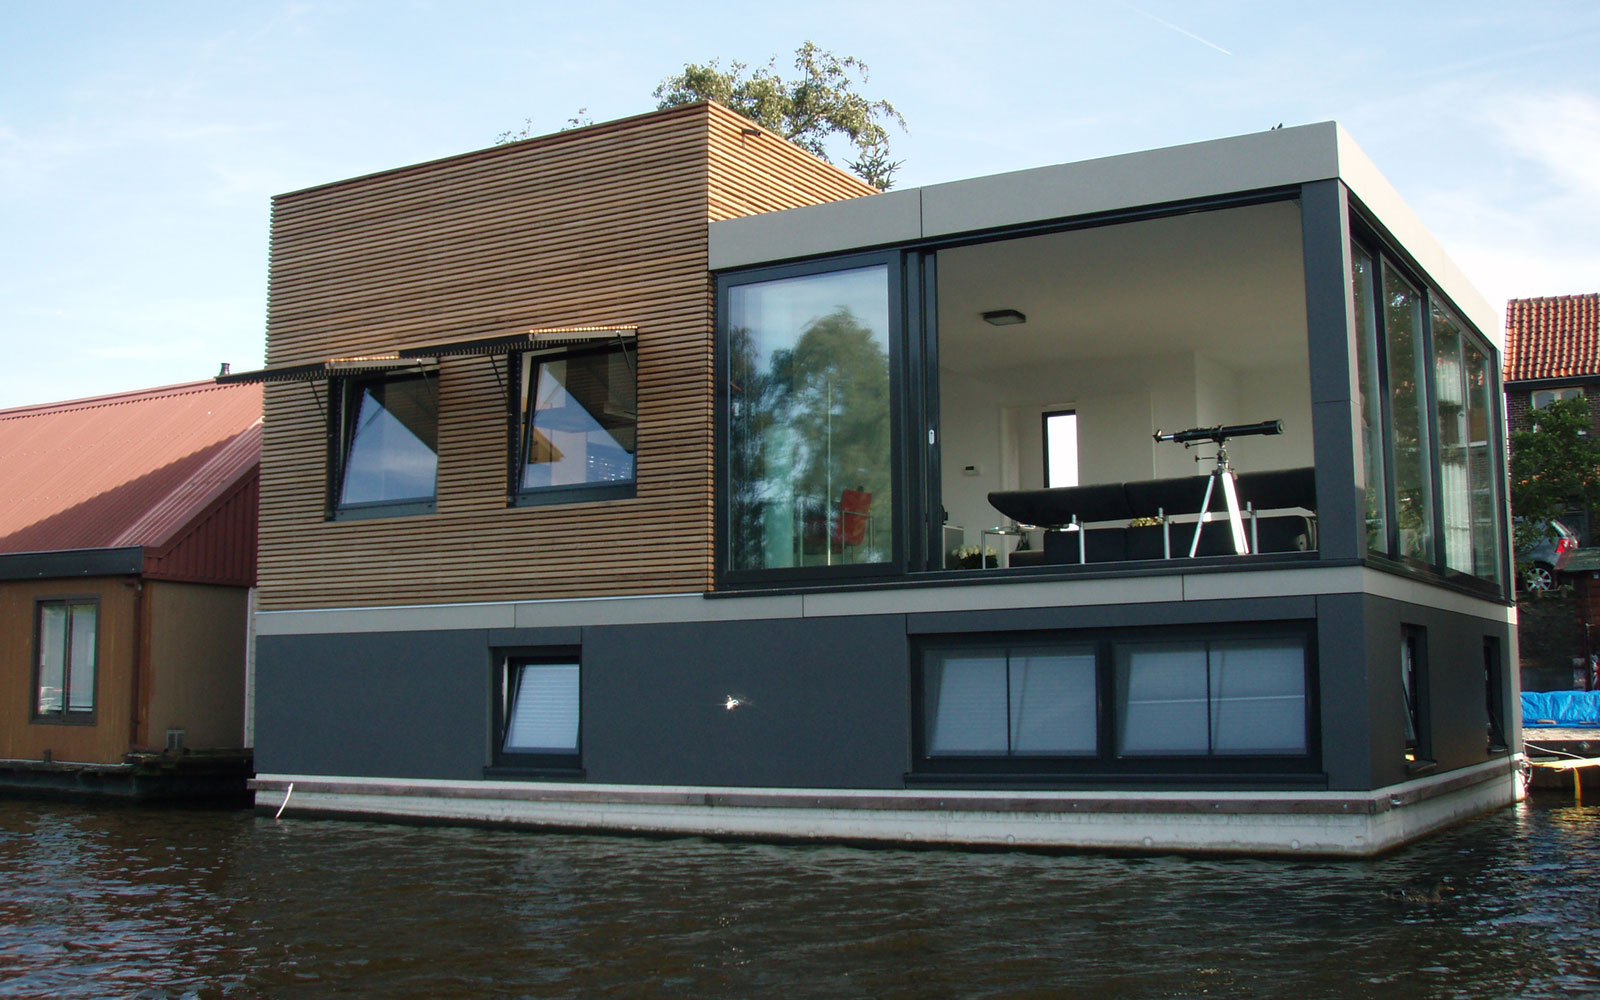 Private Watervilla, The Netherlands